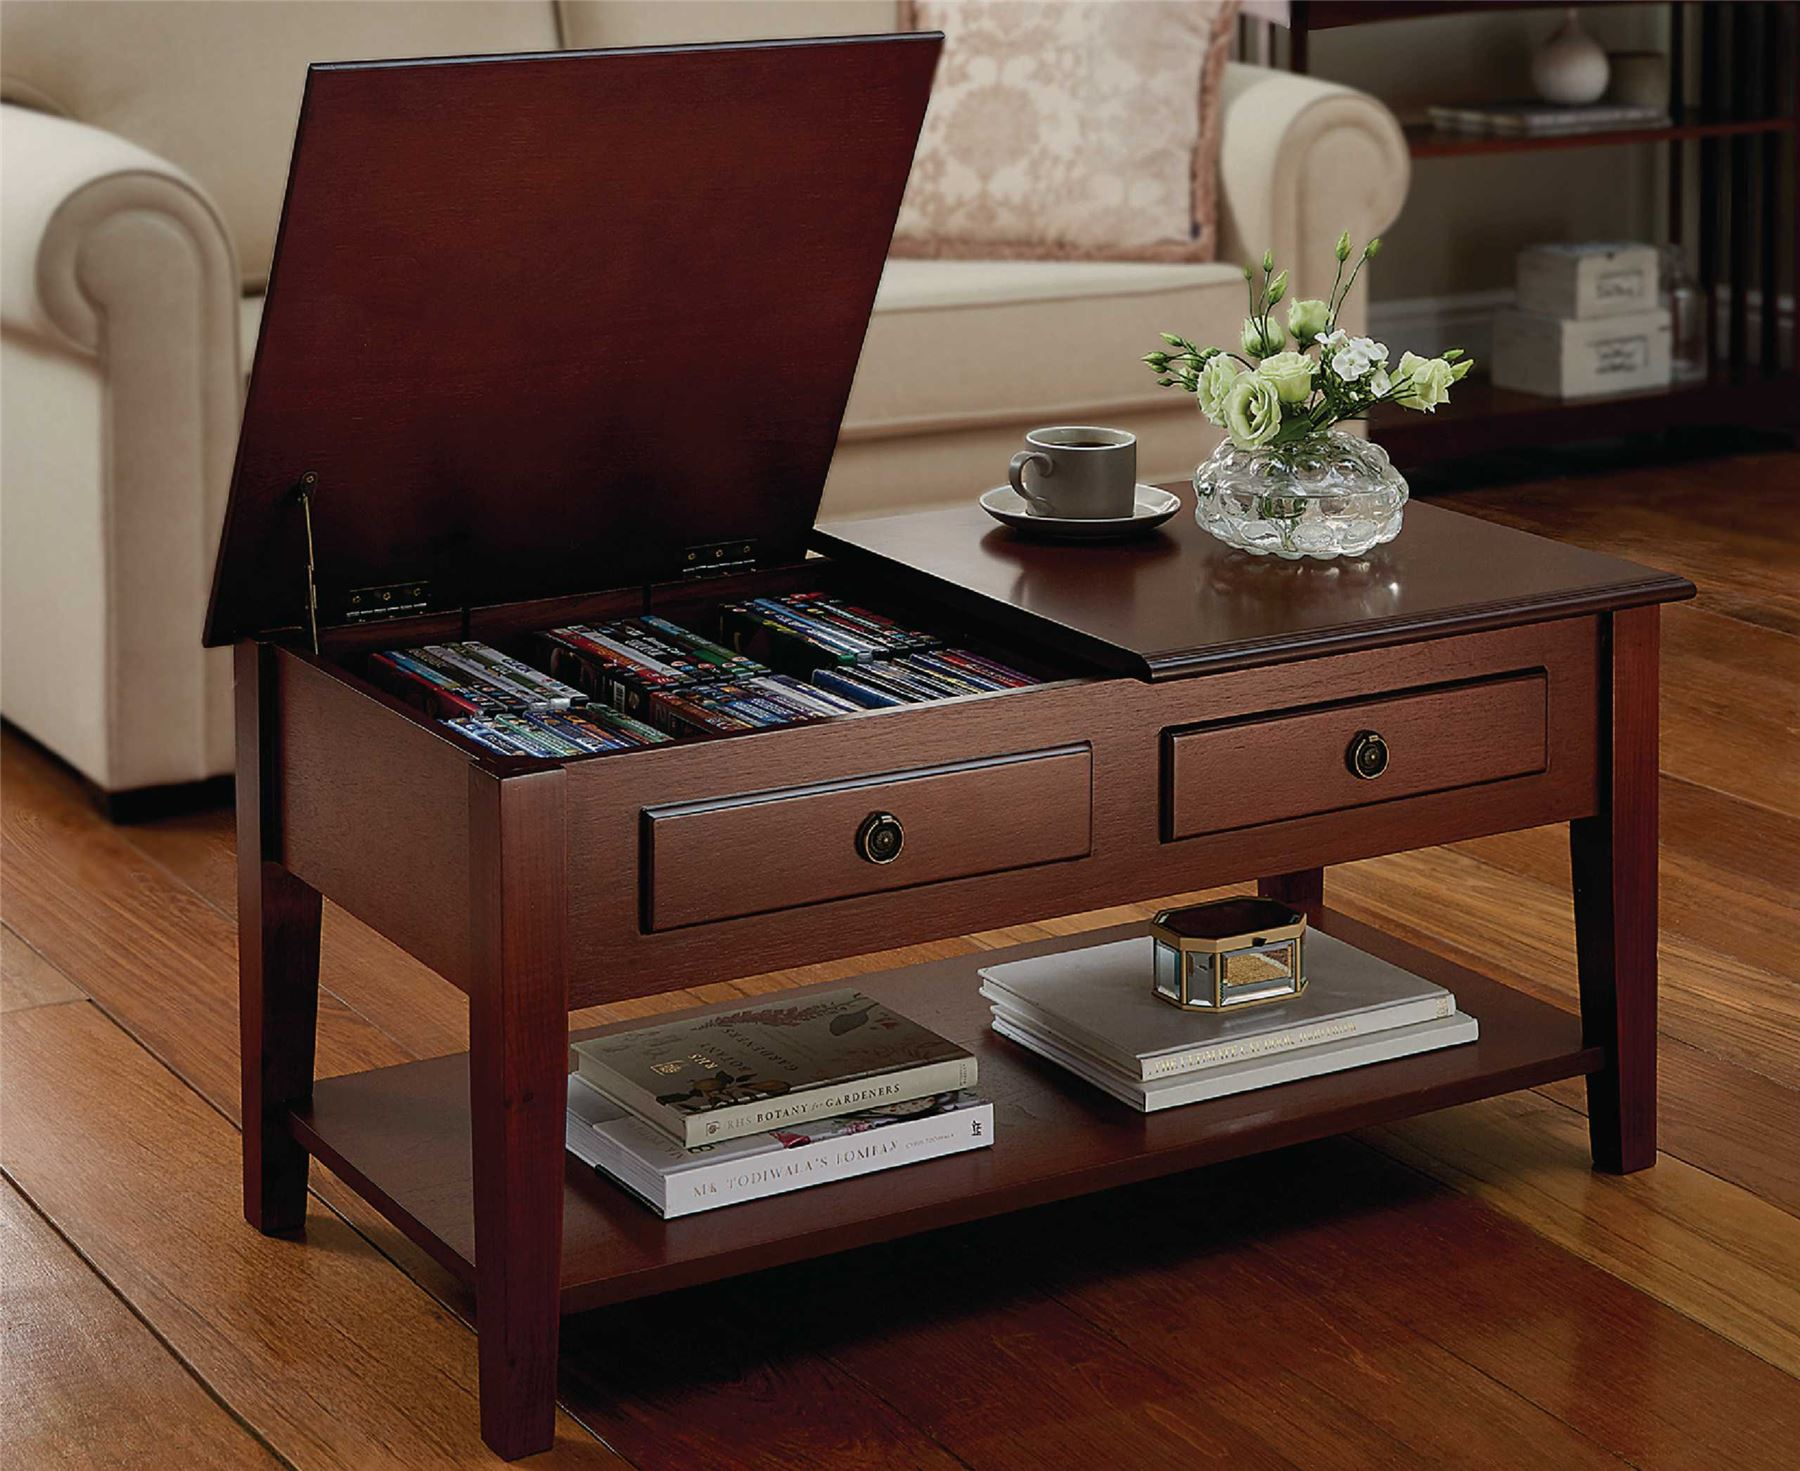 storage coffee table living room furniture dual lid cd dvd ebay. Black Bedroom Furniture Sets. Home Design Ideas